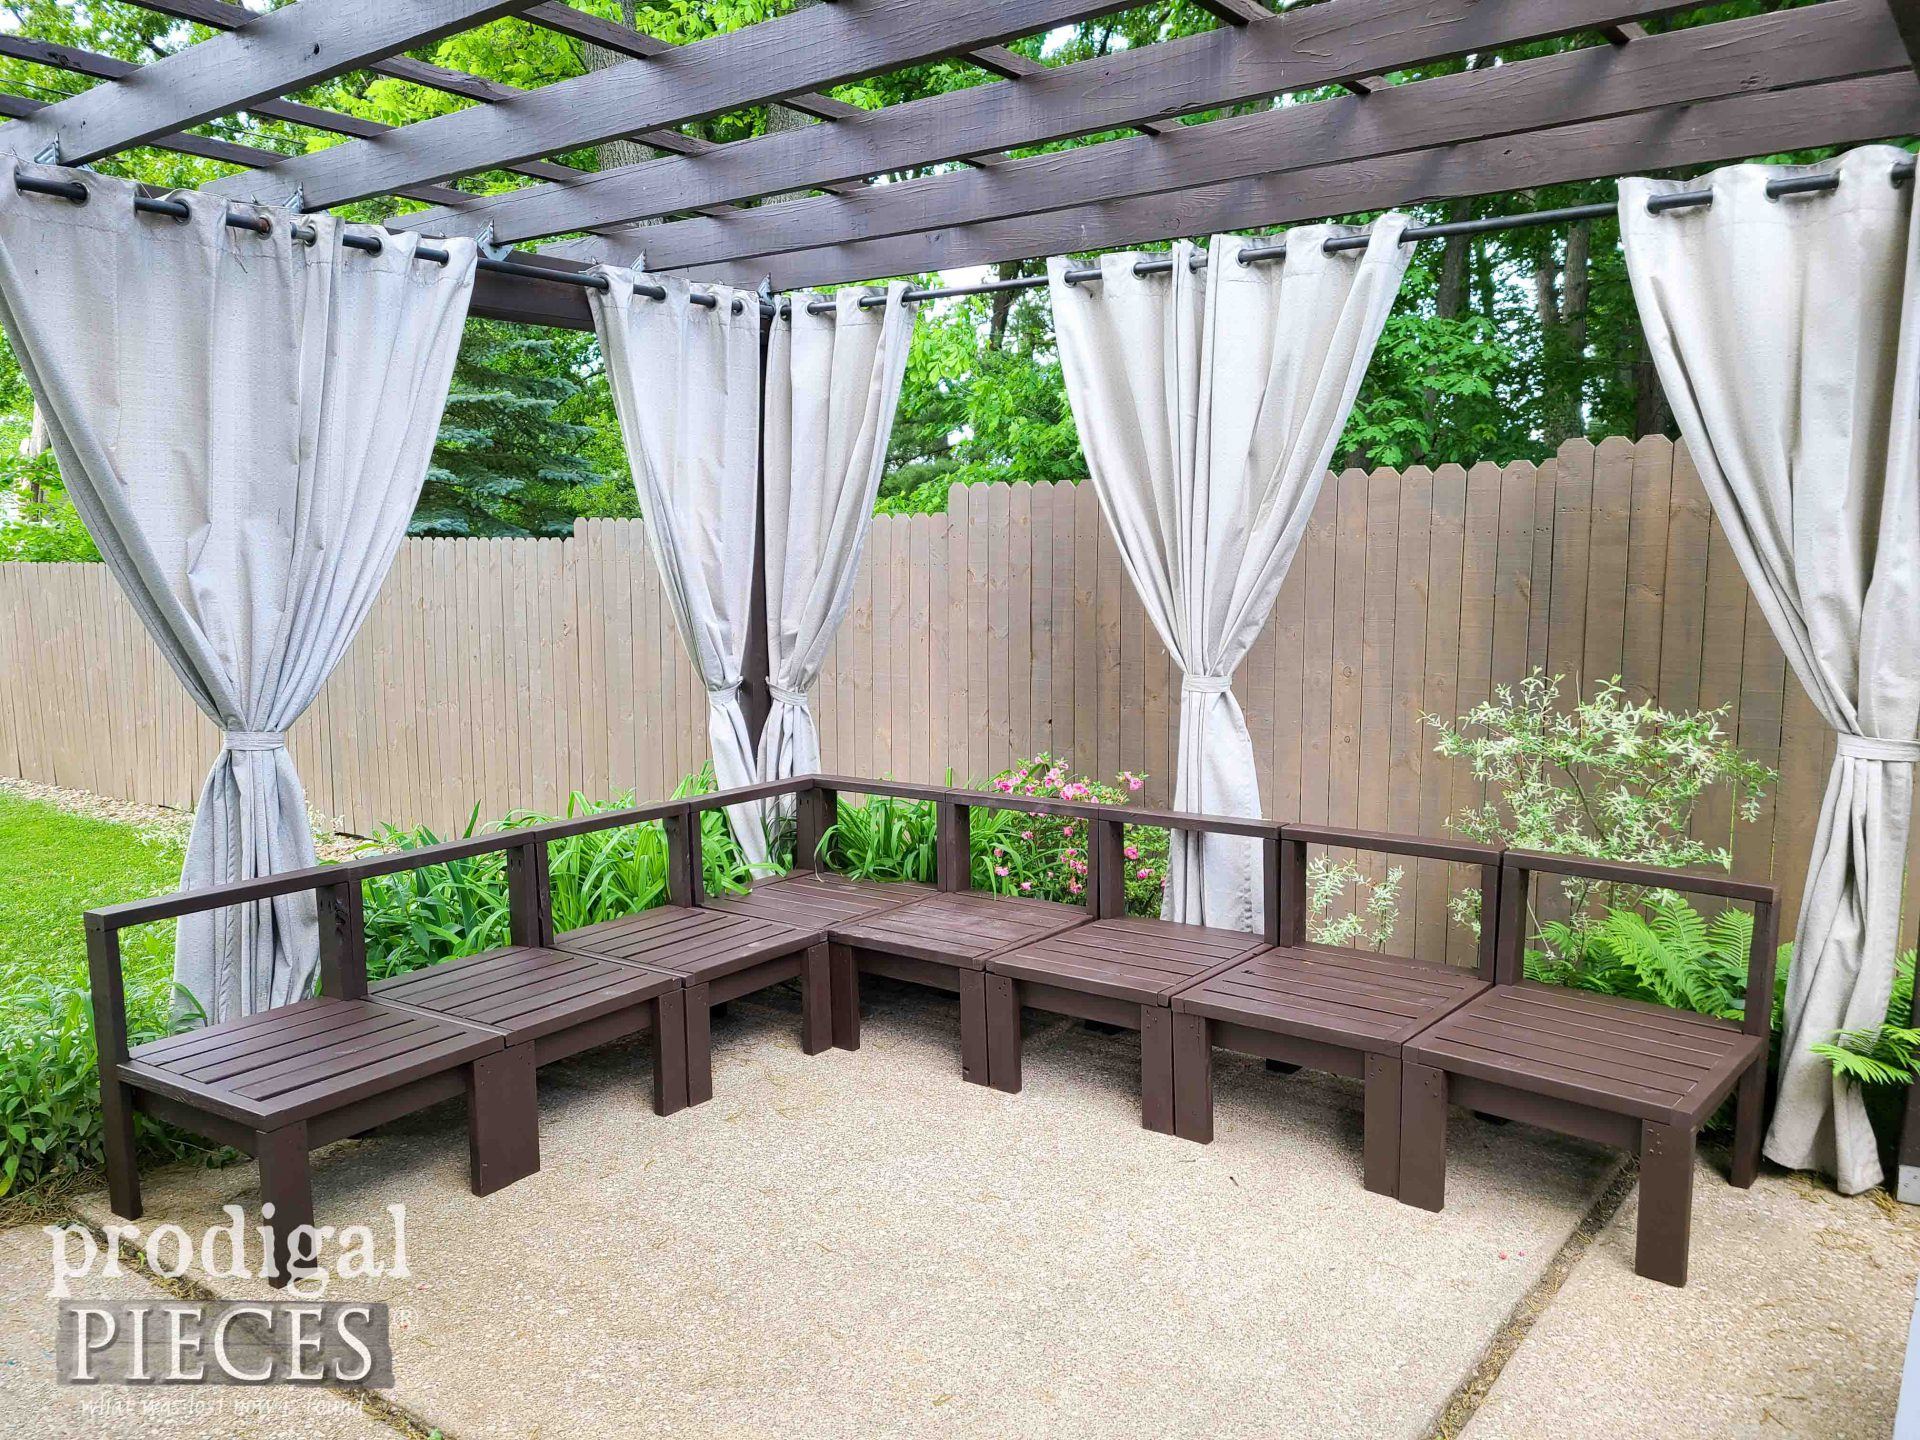 DIY Patio SEctional Stained and Ready to Go | by Prodiglal Pieces | prodigalpieces.com #prodigalpieces #patio #diy #home #outdoor #backyard